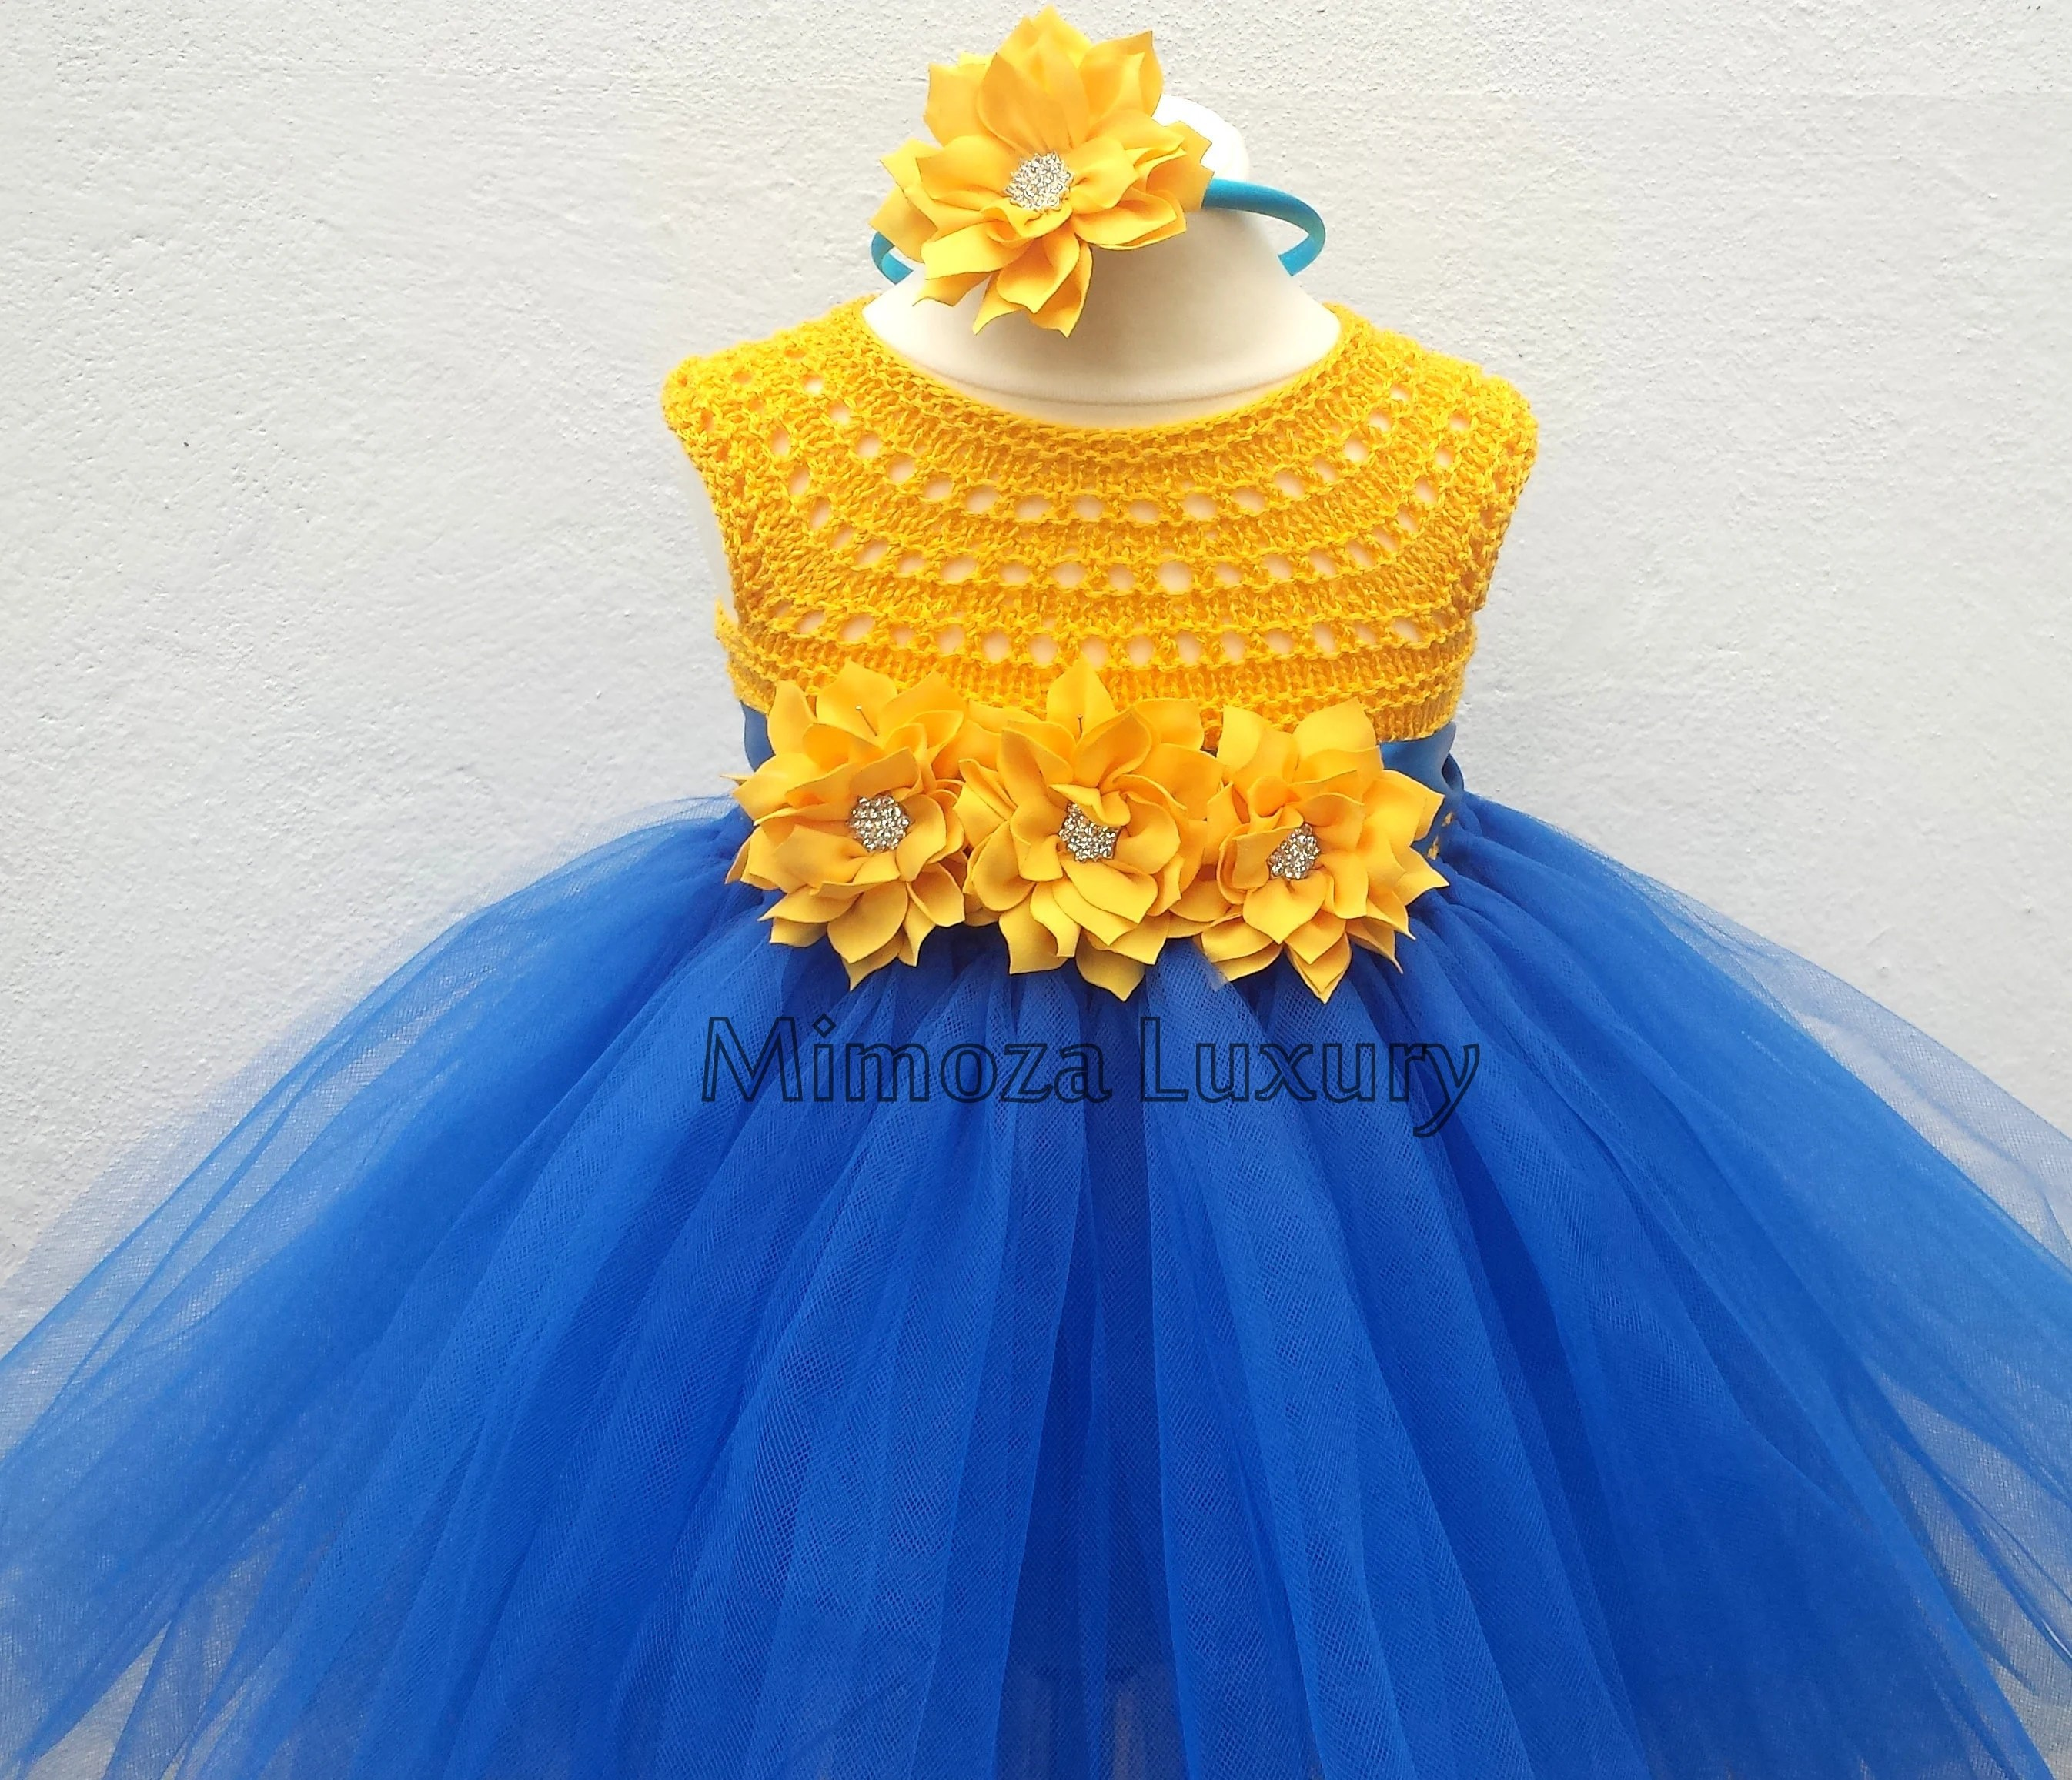 Clothing Dresses 1st Birthday Dress Crochet Top Tulle Dress Birthday Dress Outfit Yellow Blue Tutu Dress Yellow Blue Birthday Blue Yellow Tutu Dress